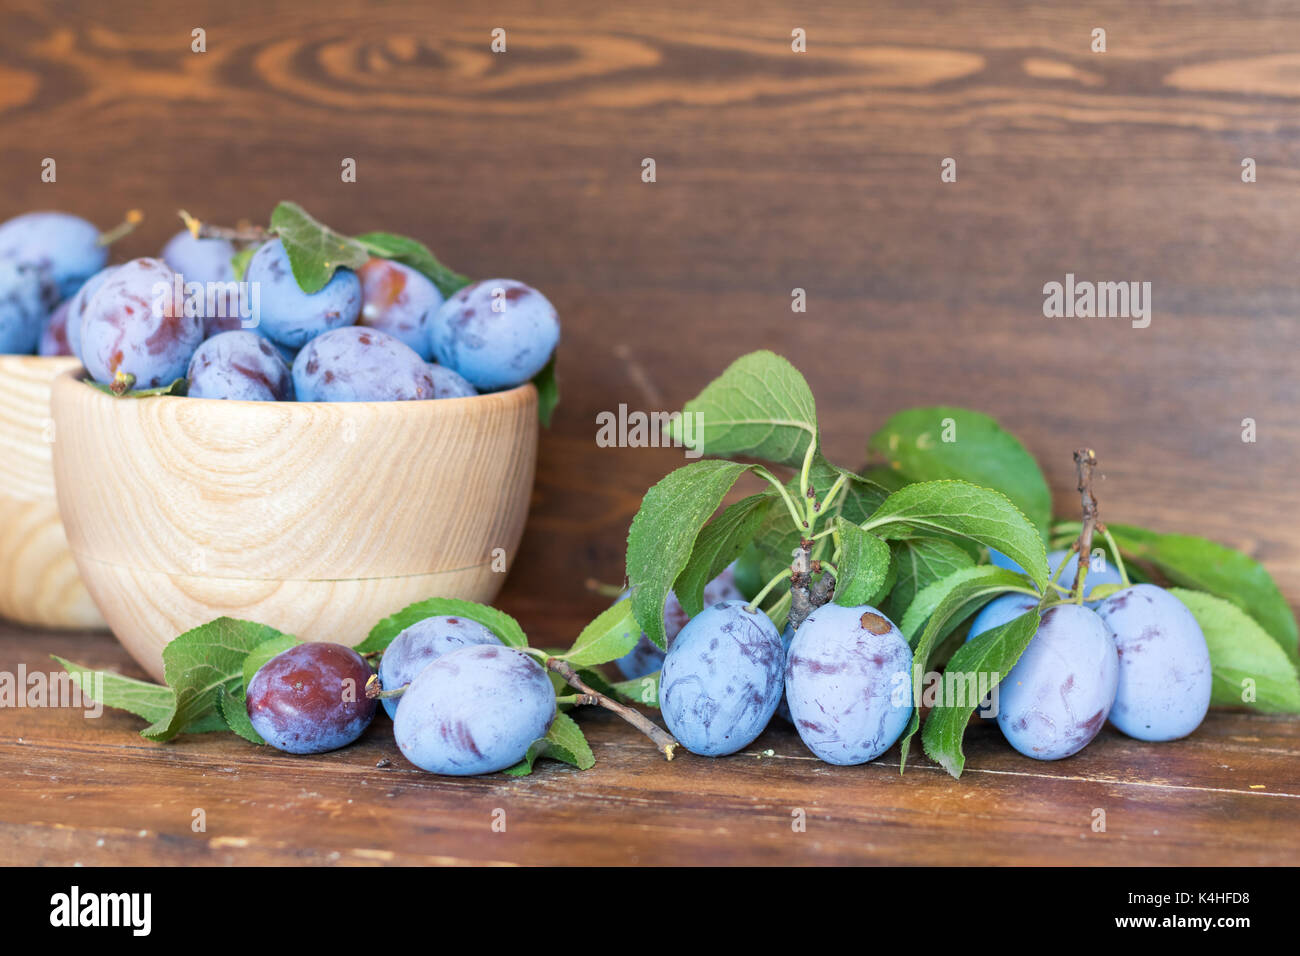 Fresh plums with green leaves in wooden pot on the dark wooden table. Shallow depth of field. Toned. - Stock Image